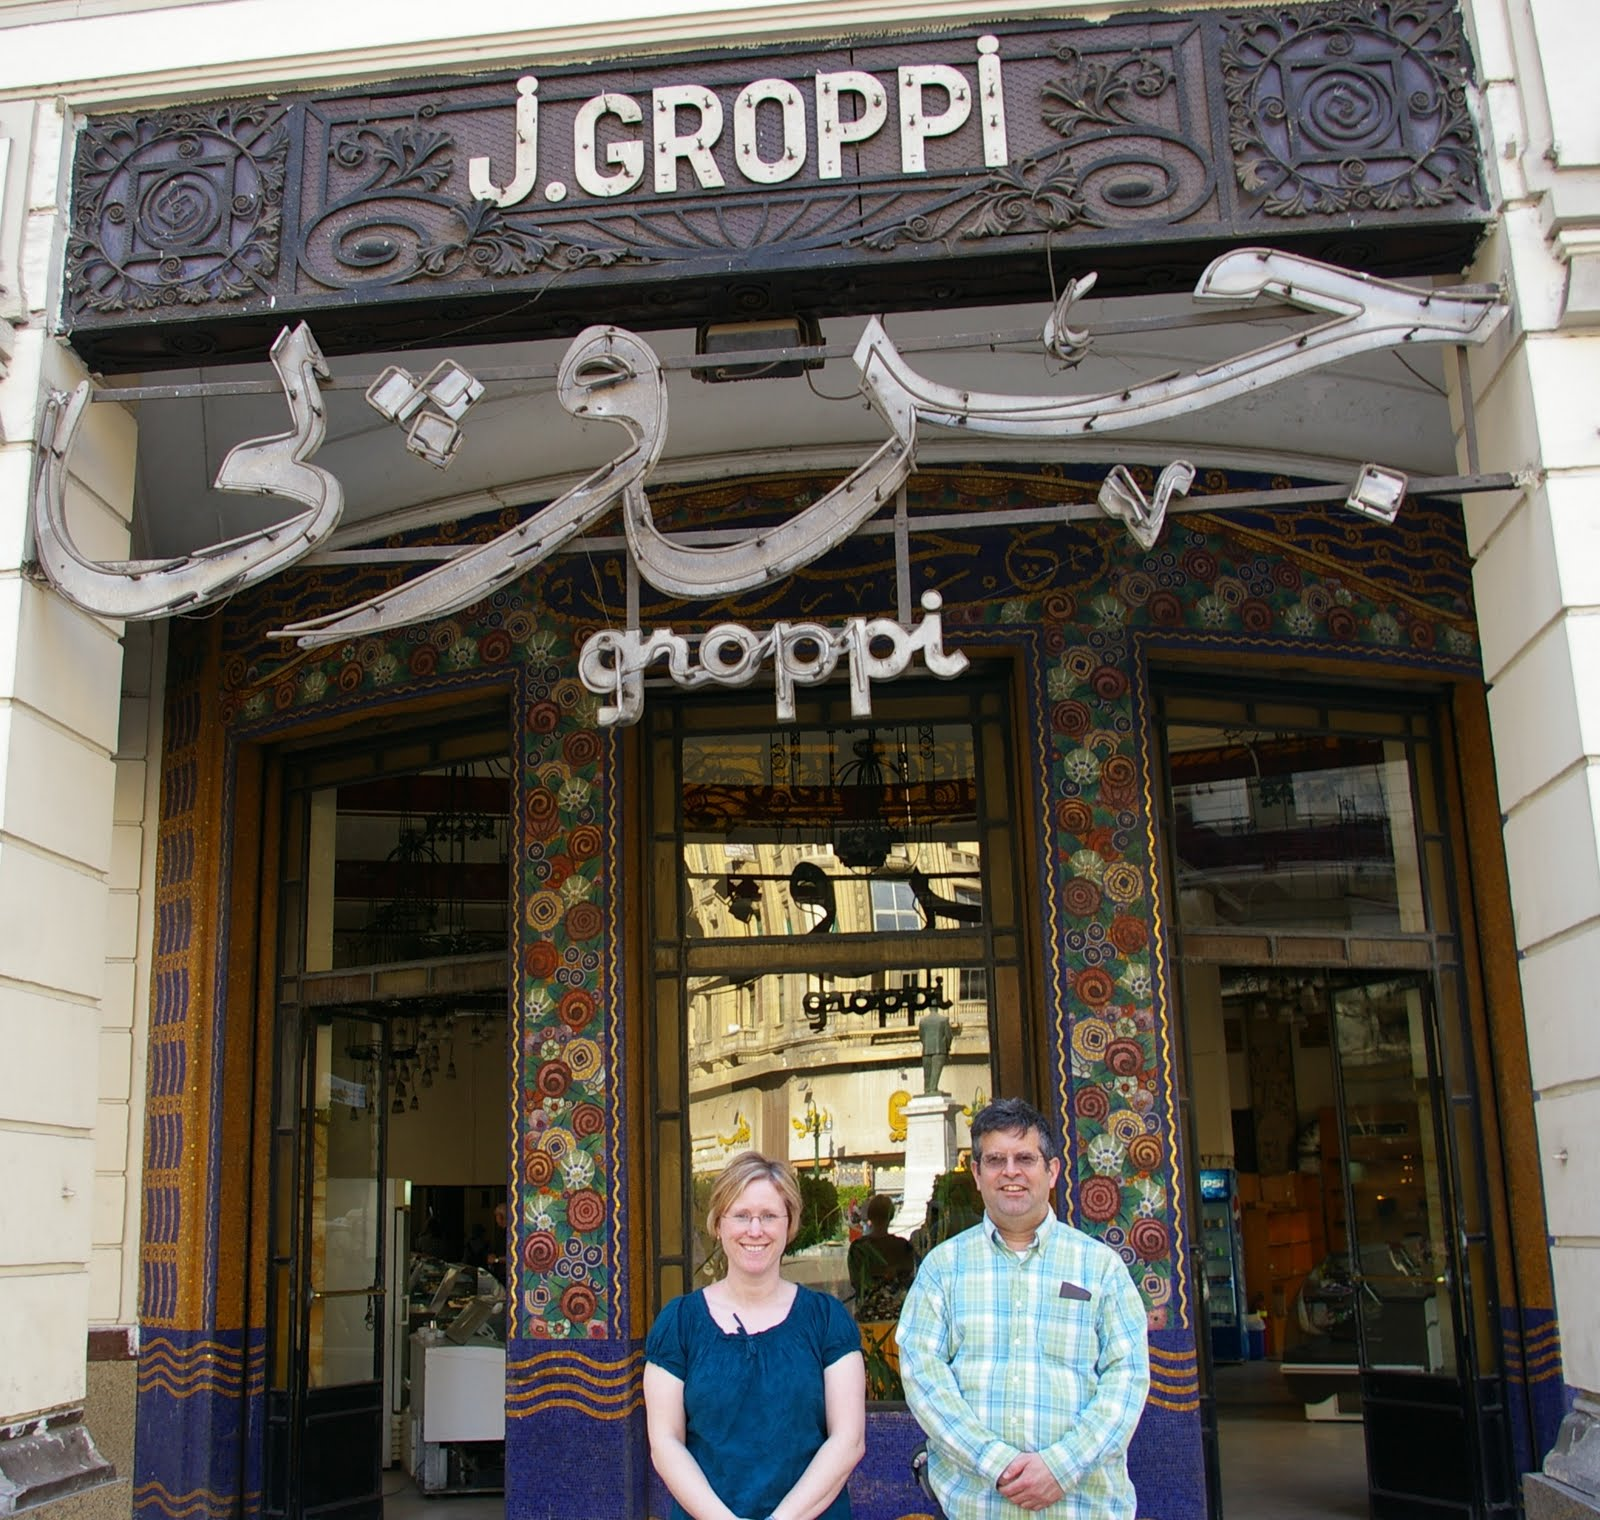 Groppi Cairo, The Quilted Turtle: Exploring Cairo: Groppi